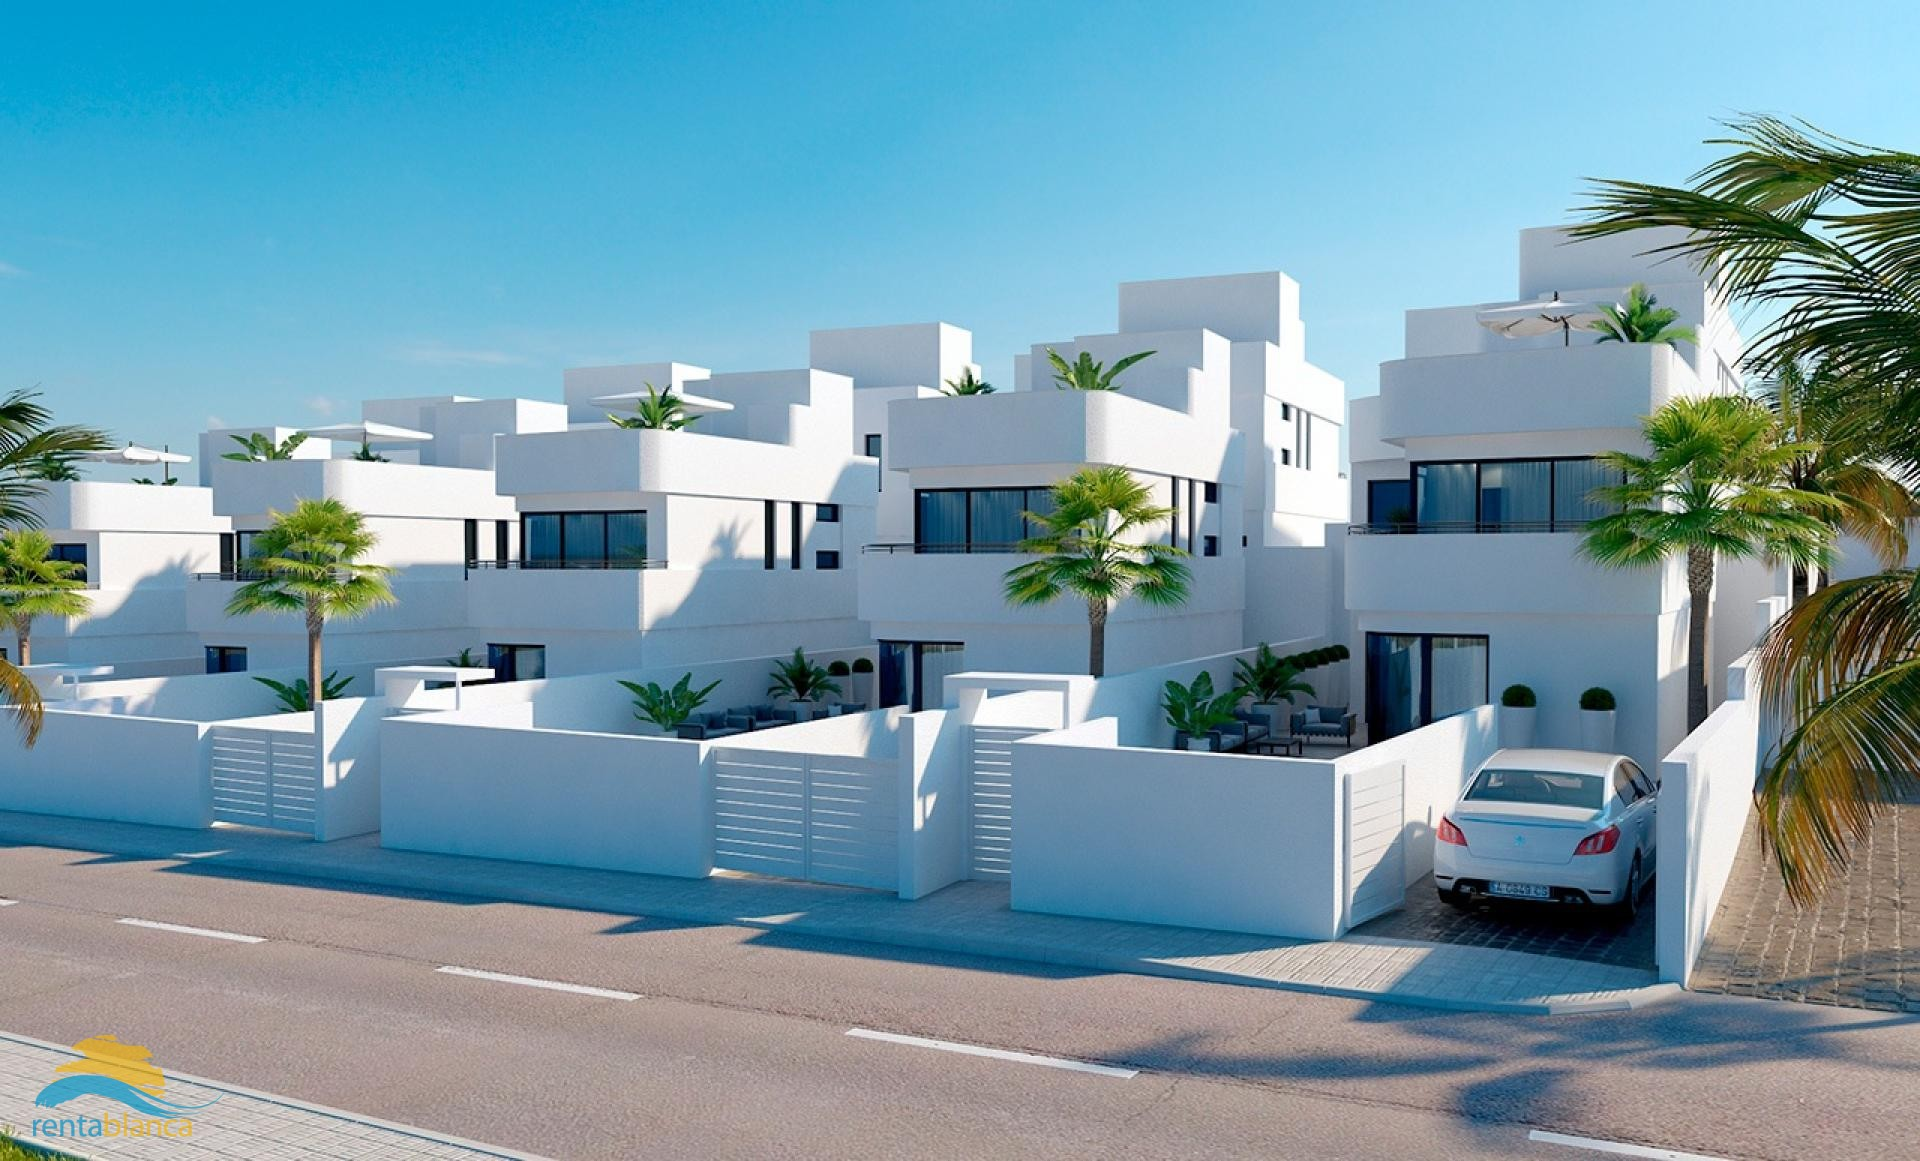 New build - modern detached villa - La Marina Urb. - Rentablanca